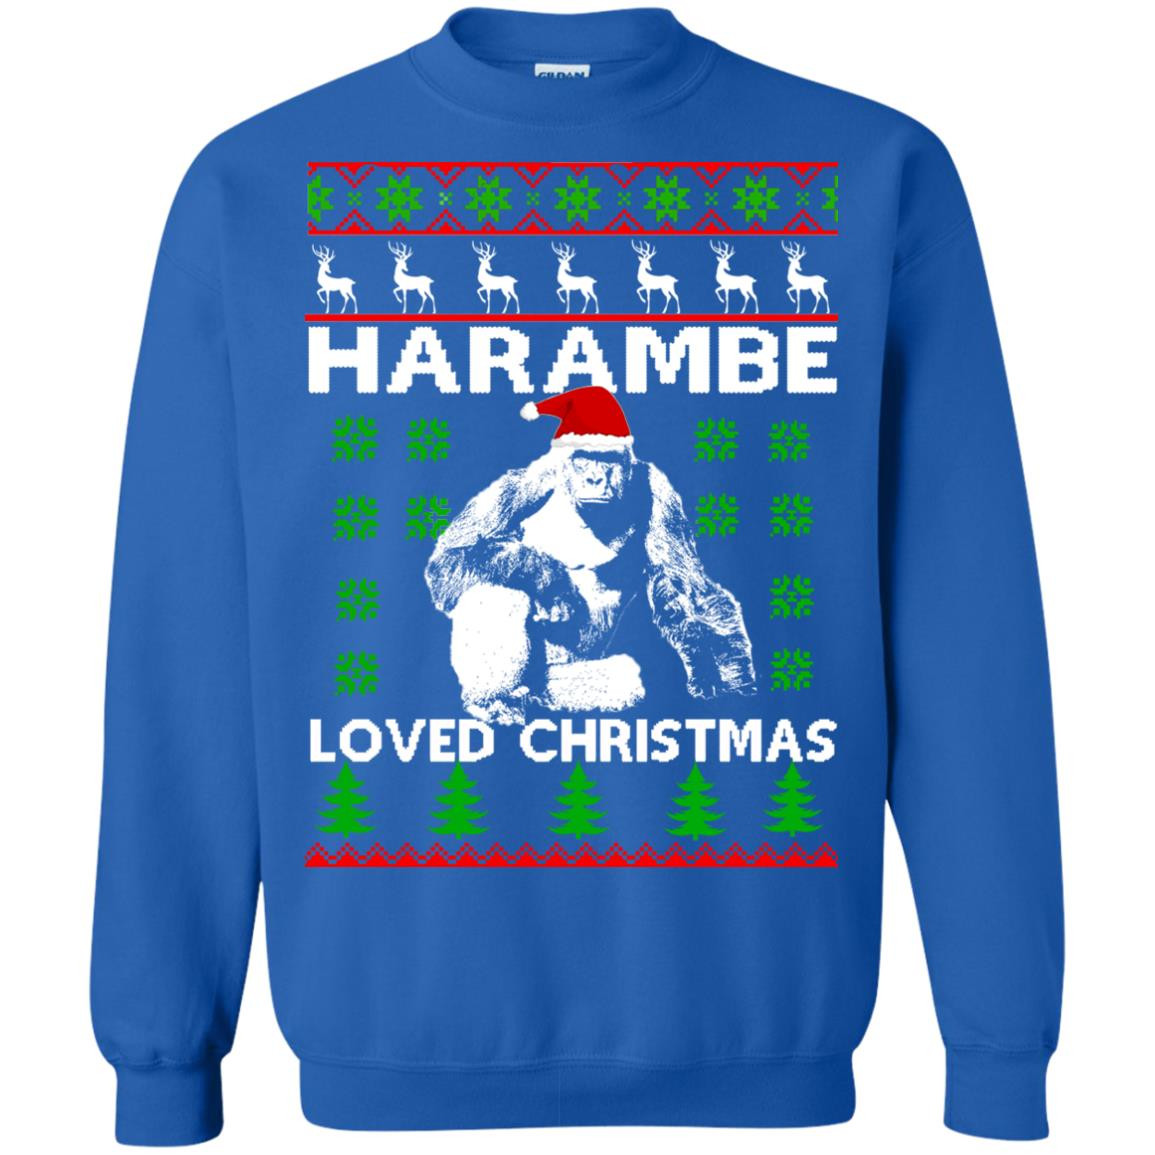 image 818 - Harambe Loved Christmas Sweater, Shirt, Hoodie